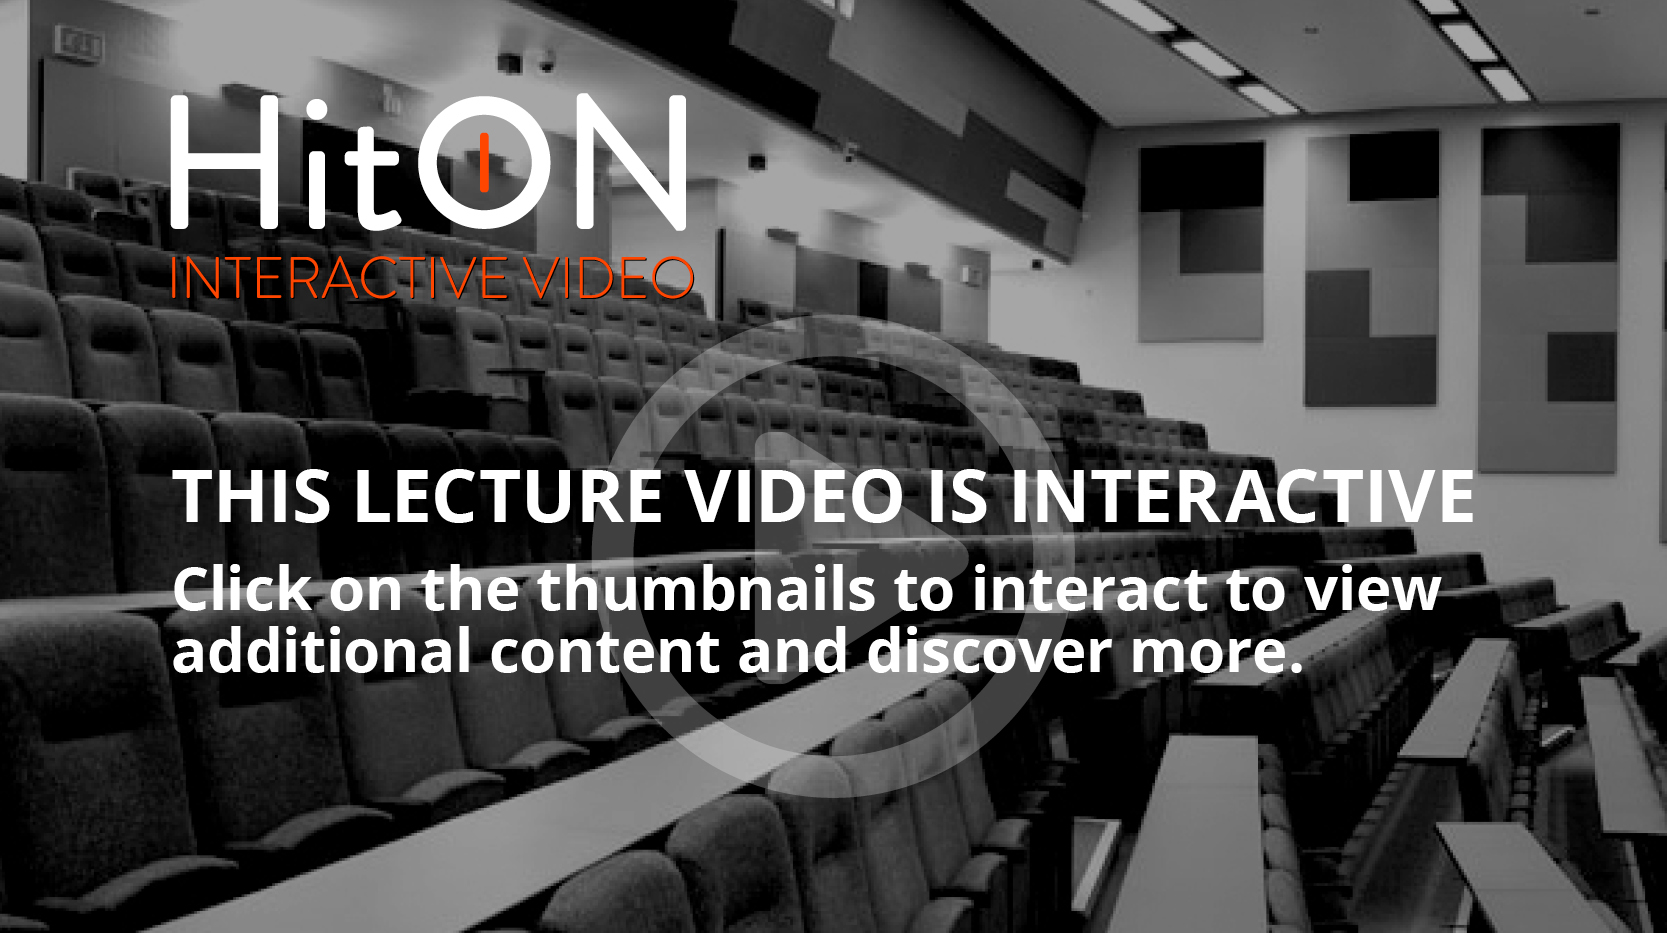 Click on the image above to watch the Interactive Lecture Video featuring Dr Brian Cox.